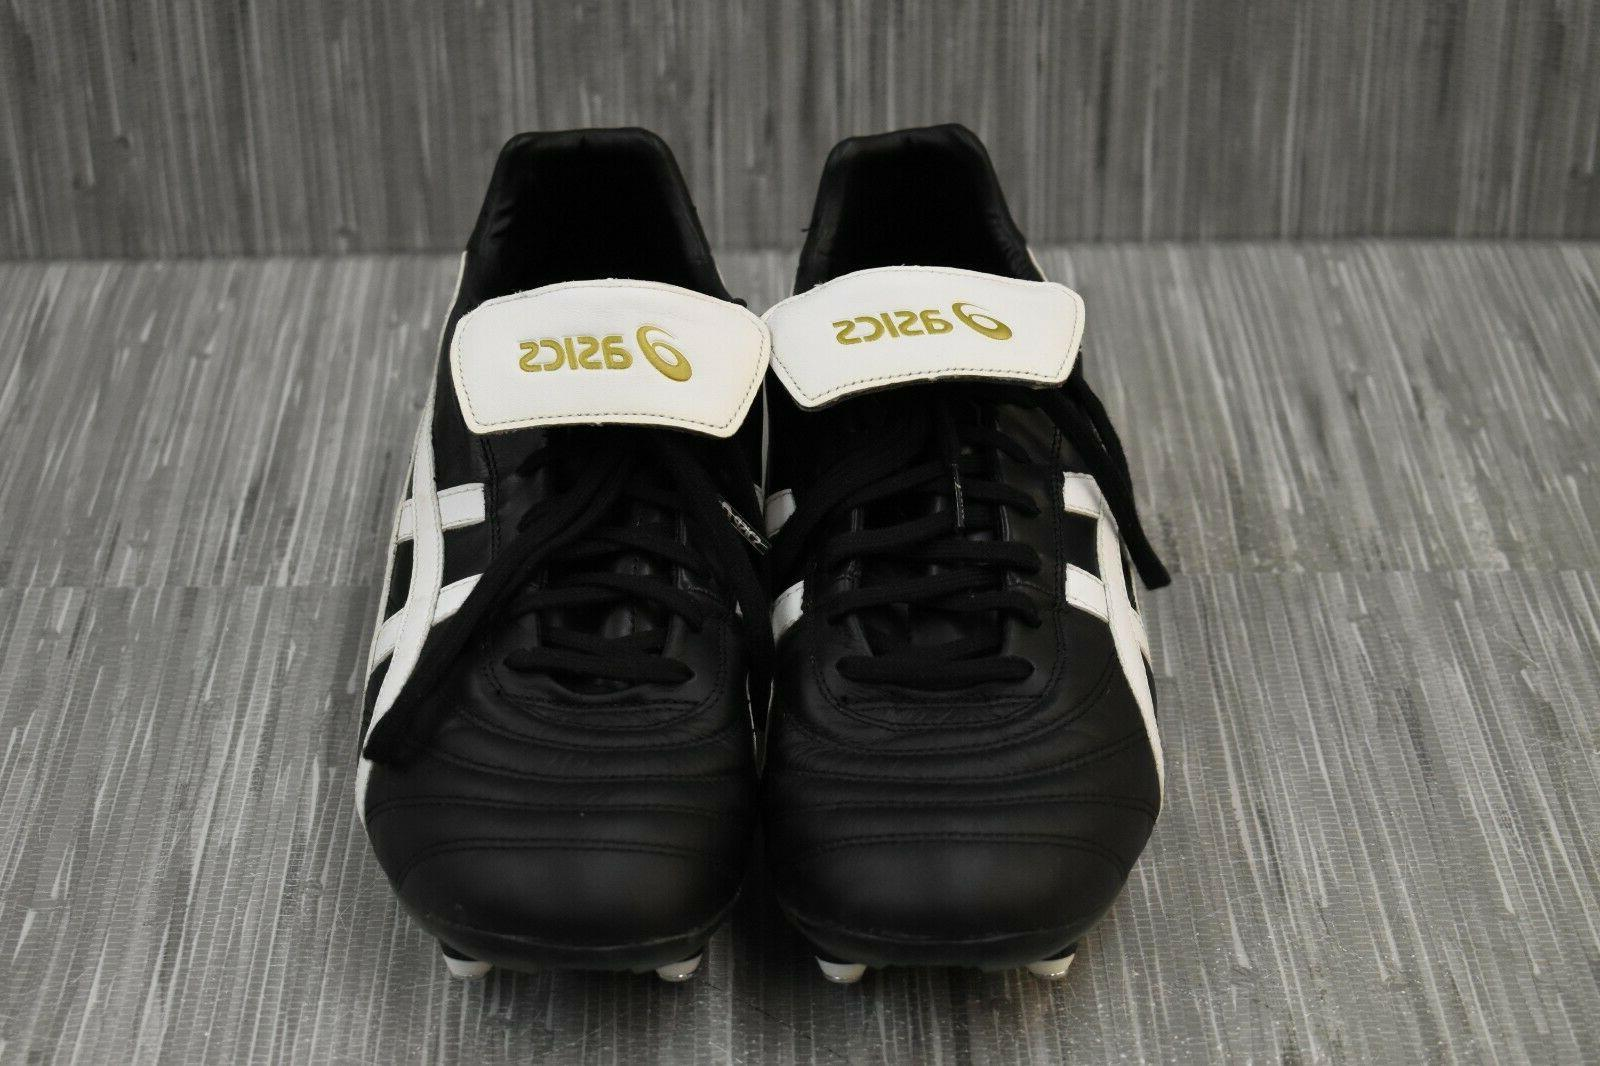 Asics Lethal Testimonial P918L Cleats, Size 12, NEW